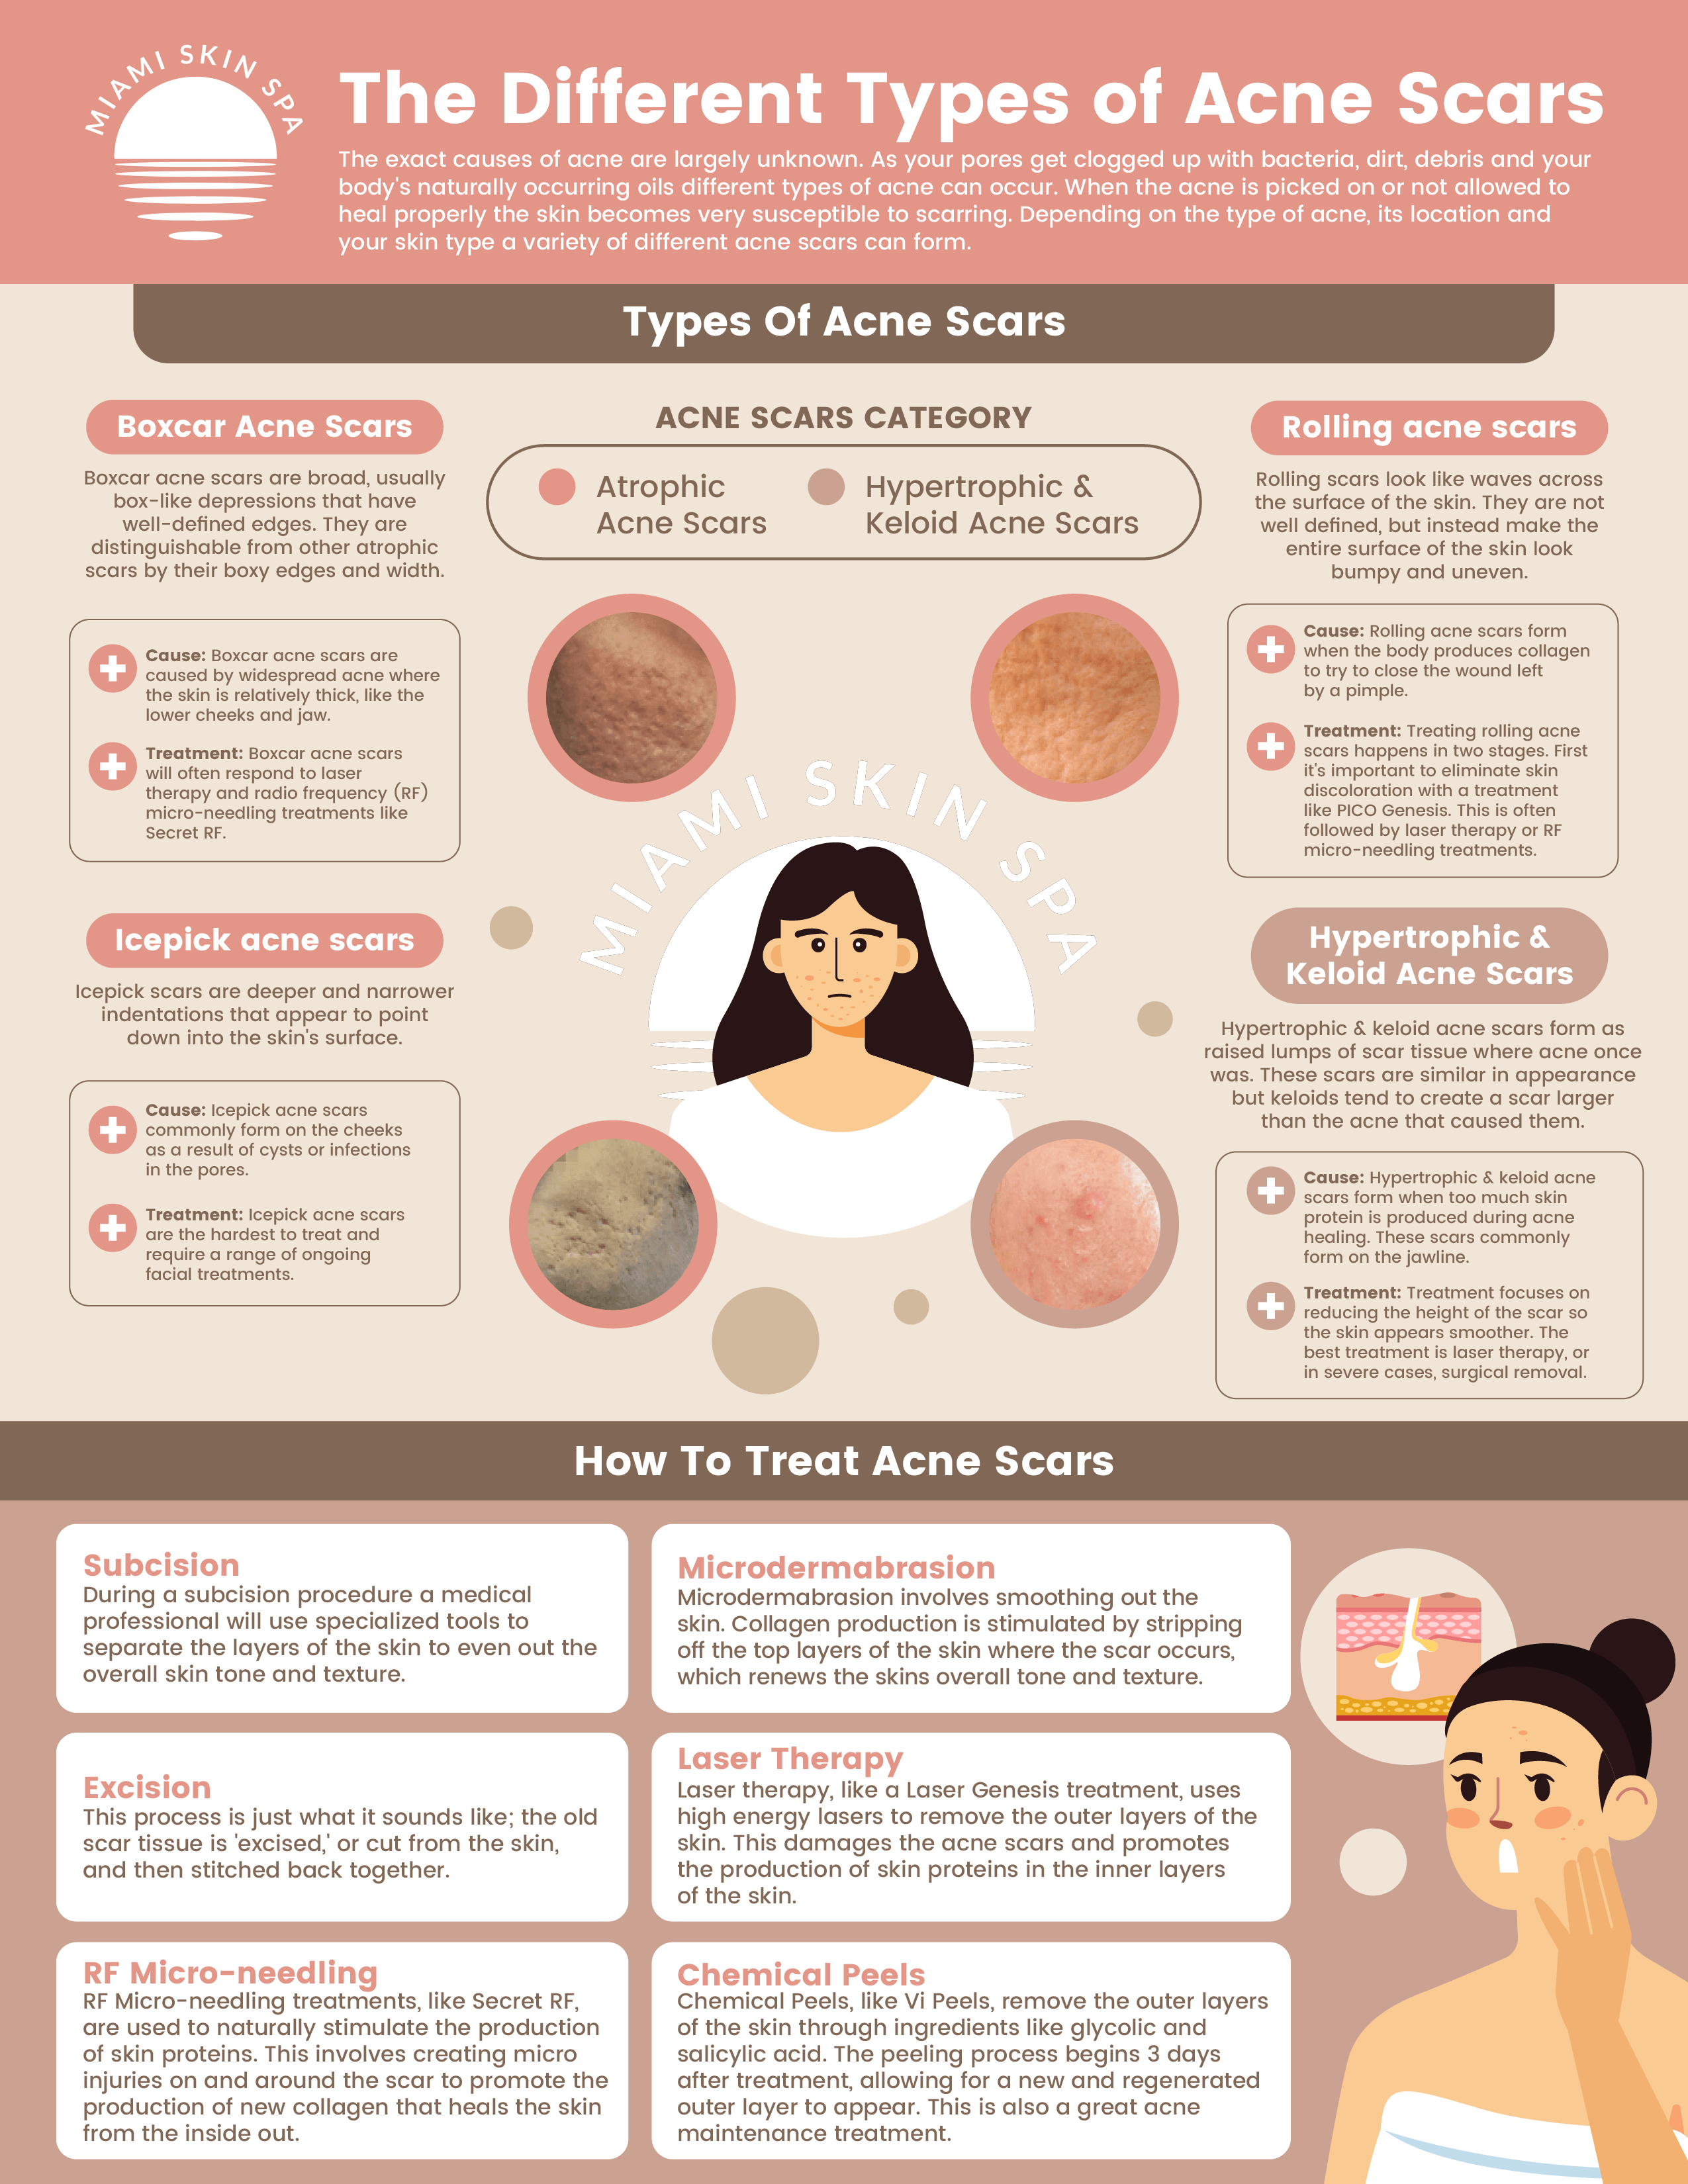 An infographic explaining the different causes of acne. that then breaks down the 4 types of acne scars (Boxcar acne scars, icepick acne scars, rolling acne scars, and hypertrophic/keloid acne scars). For each types of acne scarring the cause of the scar and the recommended treatment is listed. At the bottom a description of all the different acen scarring tretaments available are clearly defined.